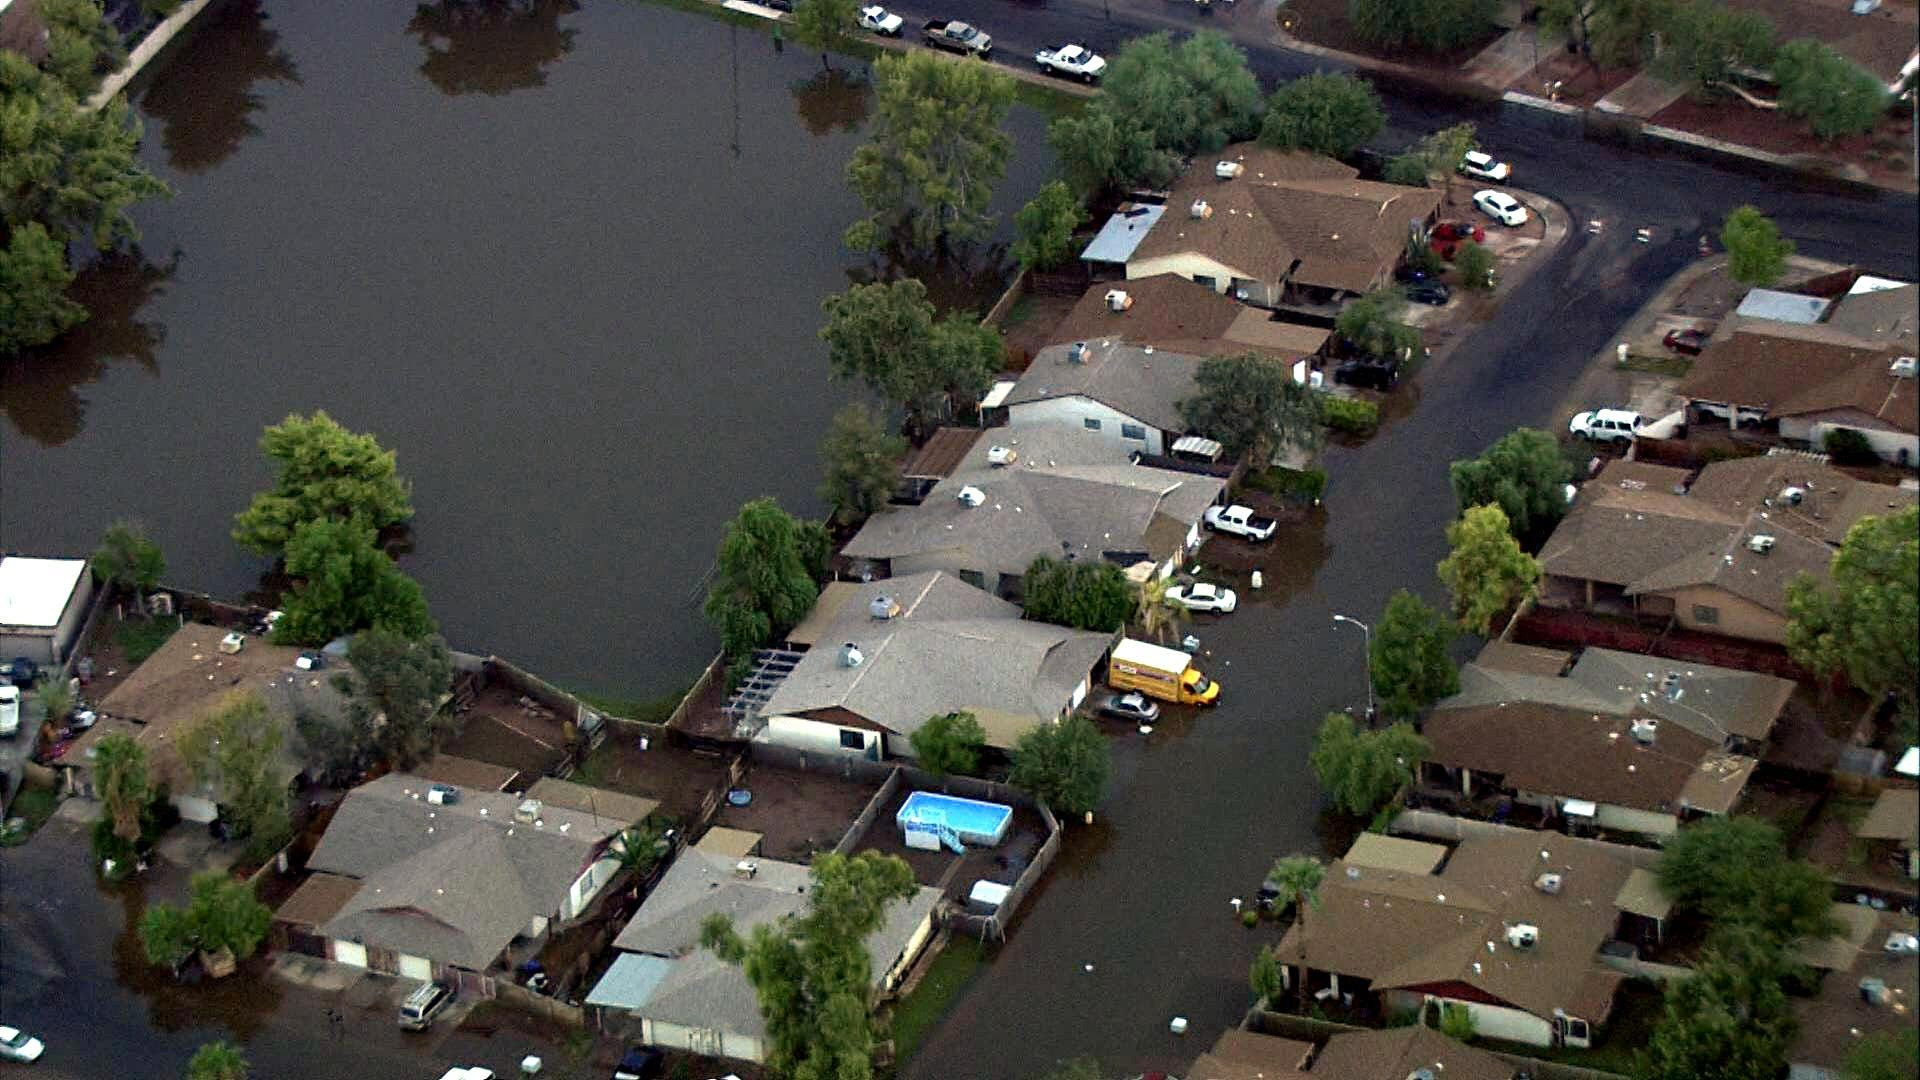 'Still feels like the flood happened yesterday': The storm that changed Mesa | Arizona Central